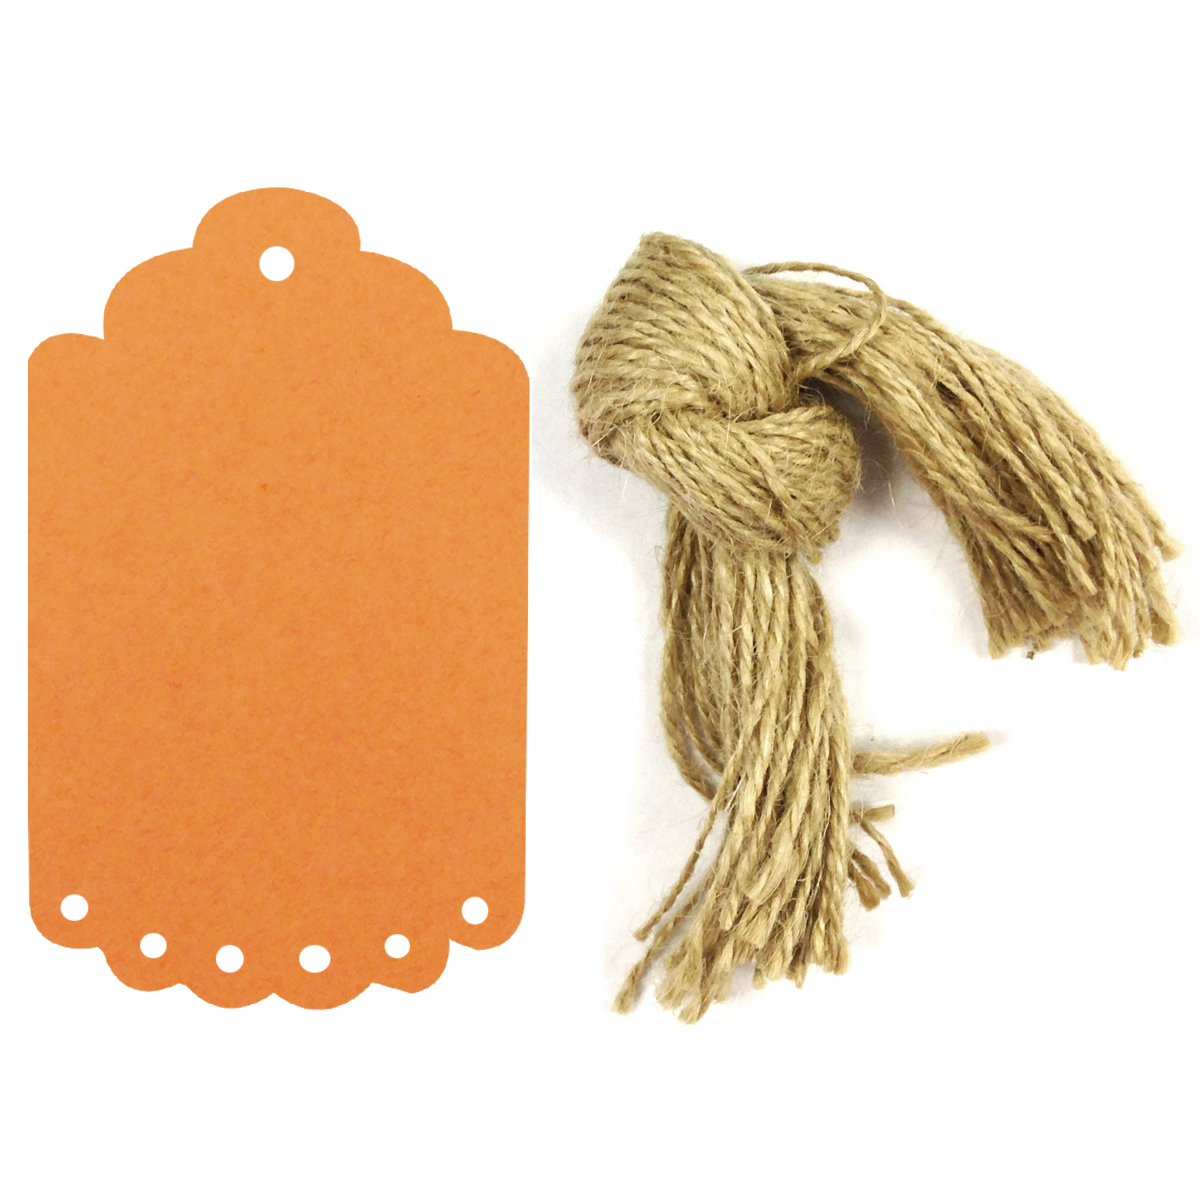 Wrapables® 10 Gift Tags/Kraft Hang Tags with Free Cut Strings for Gifts, Crafts & Price Tags, Large Scalloped Edge (Orange)